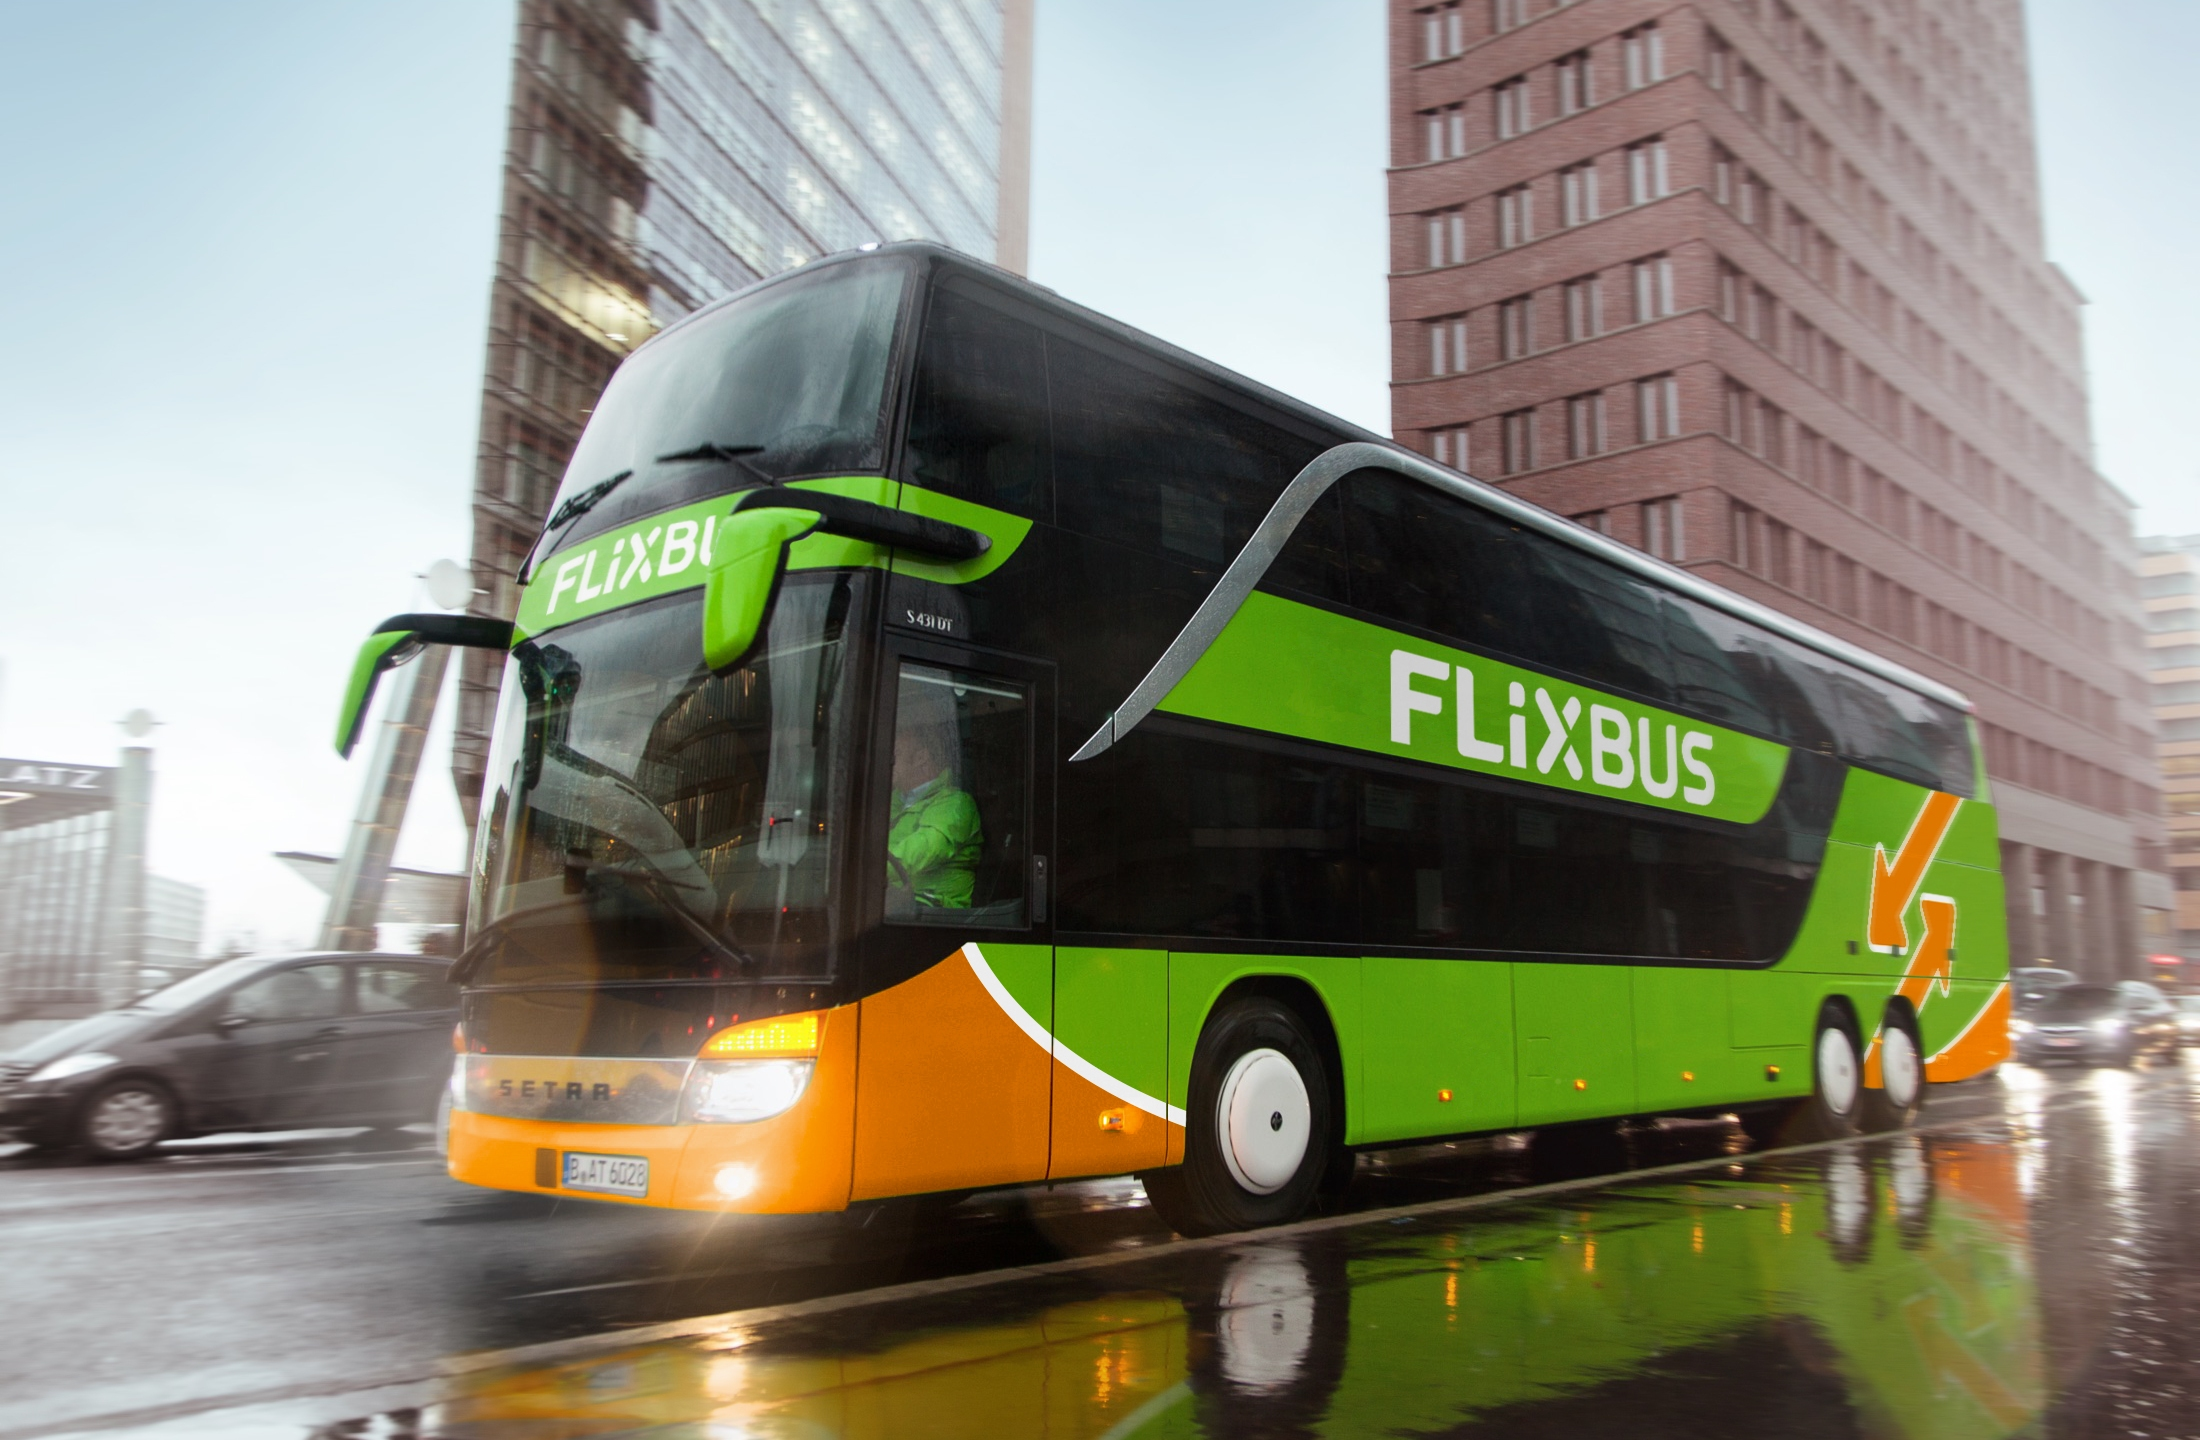 flixbus-on-the-road-free-for-editorial-purposes_1555373994039.jpg